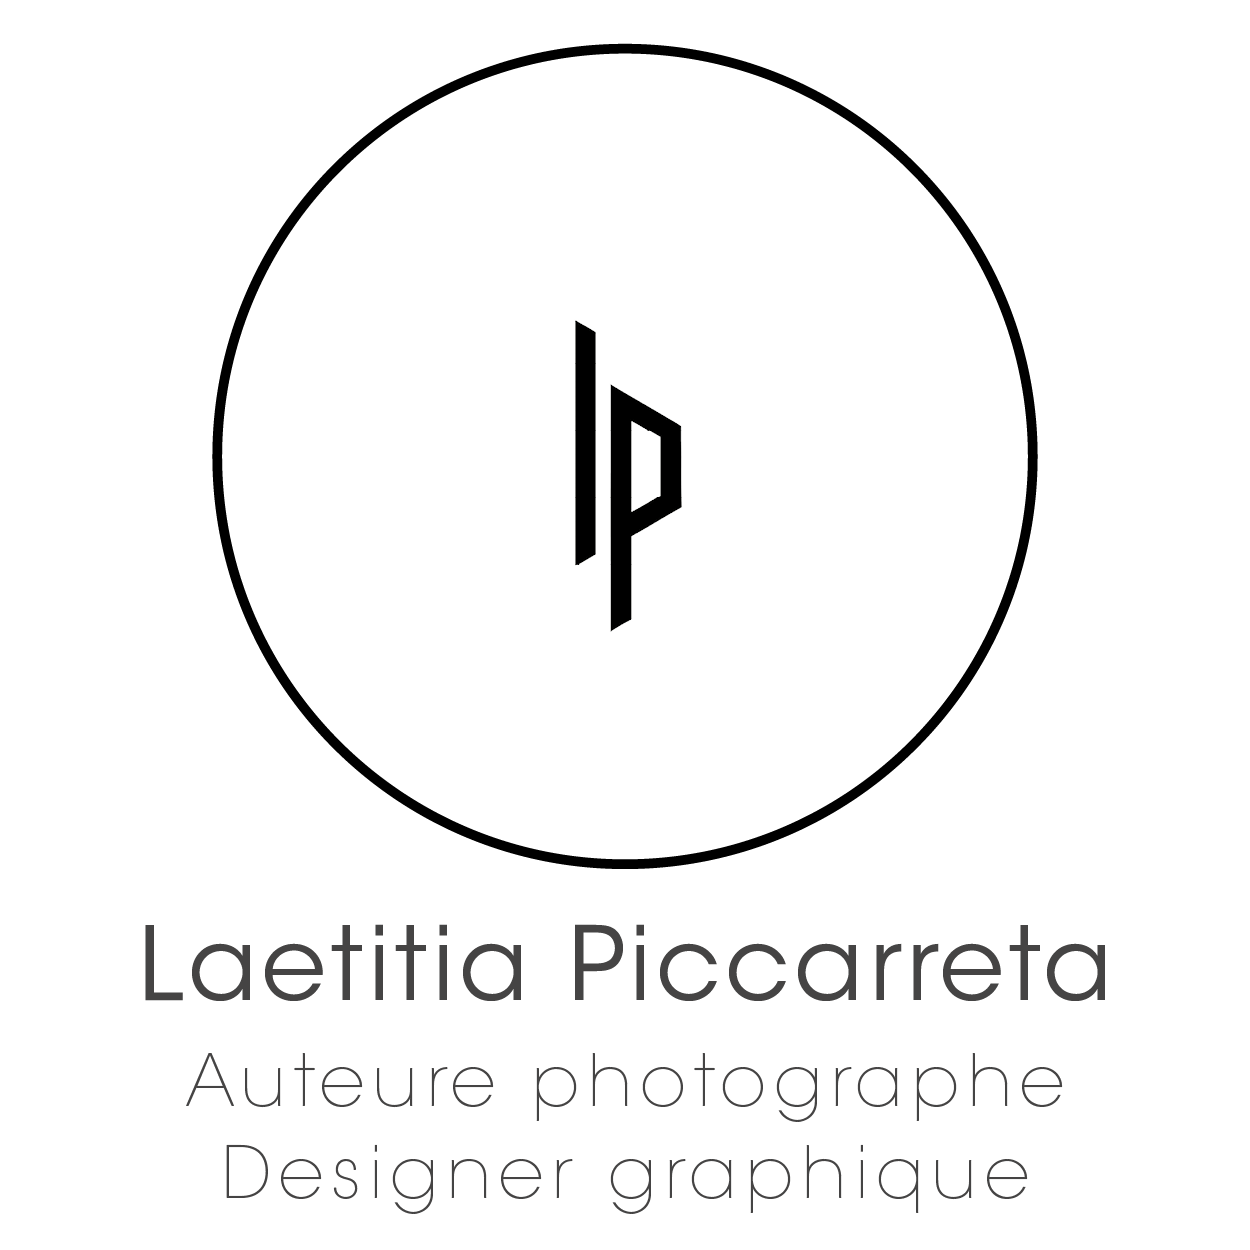 Logo Lp Photographe Design Graphique Transparent